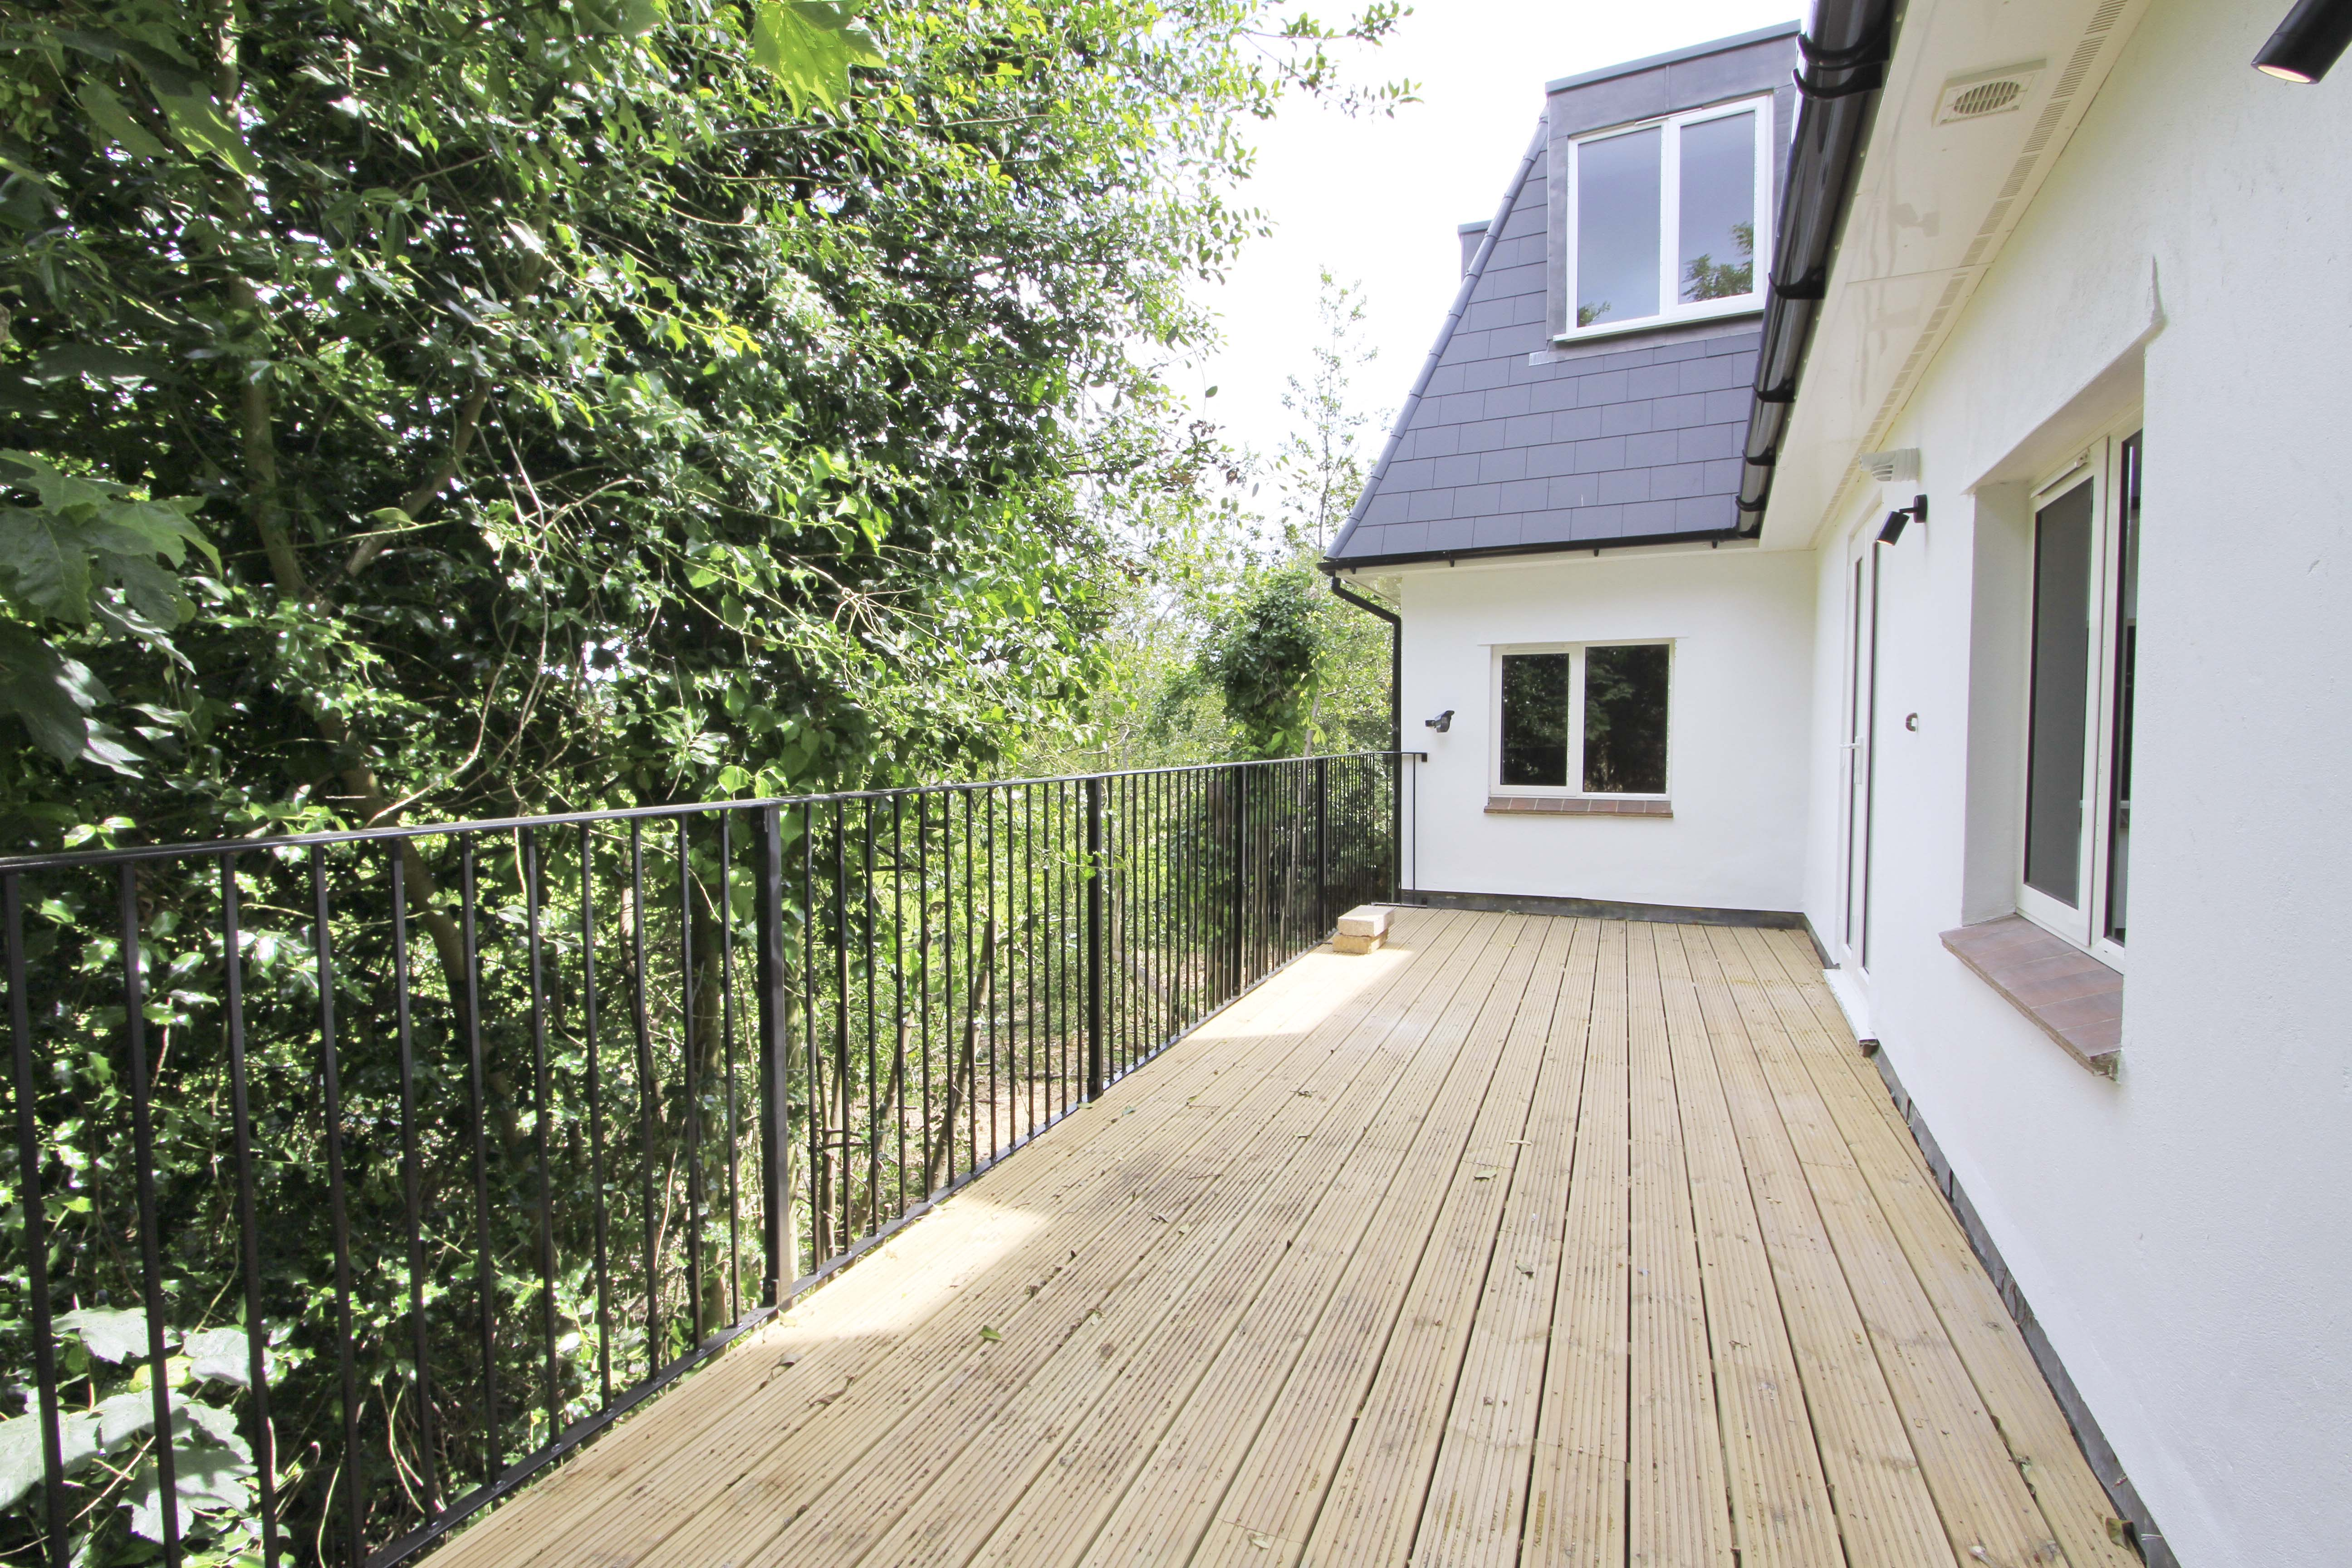 Universal House, Iver SL0, 4 Flats Remaining!